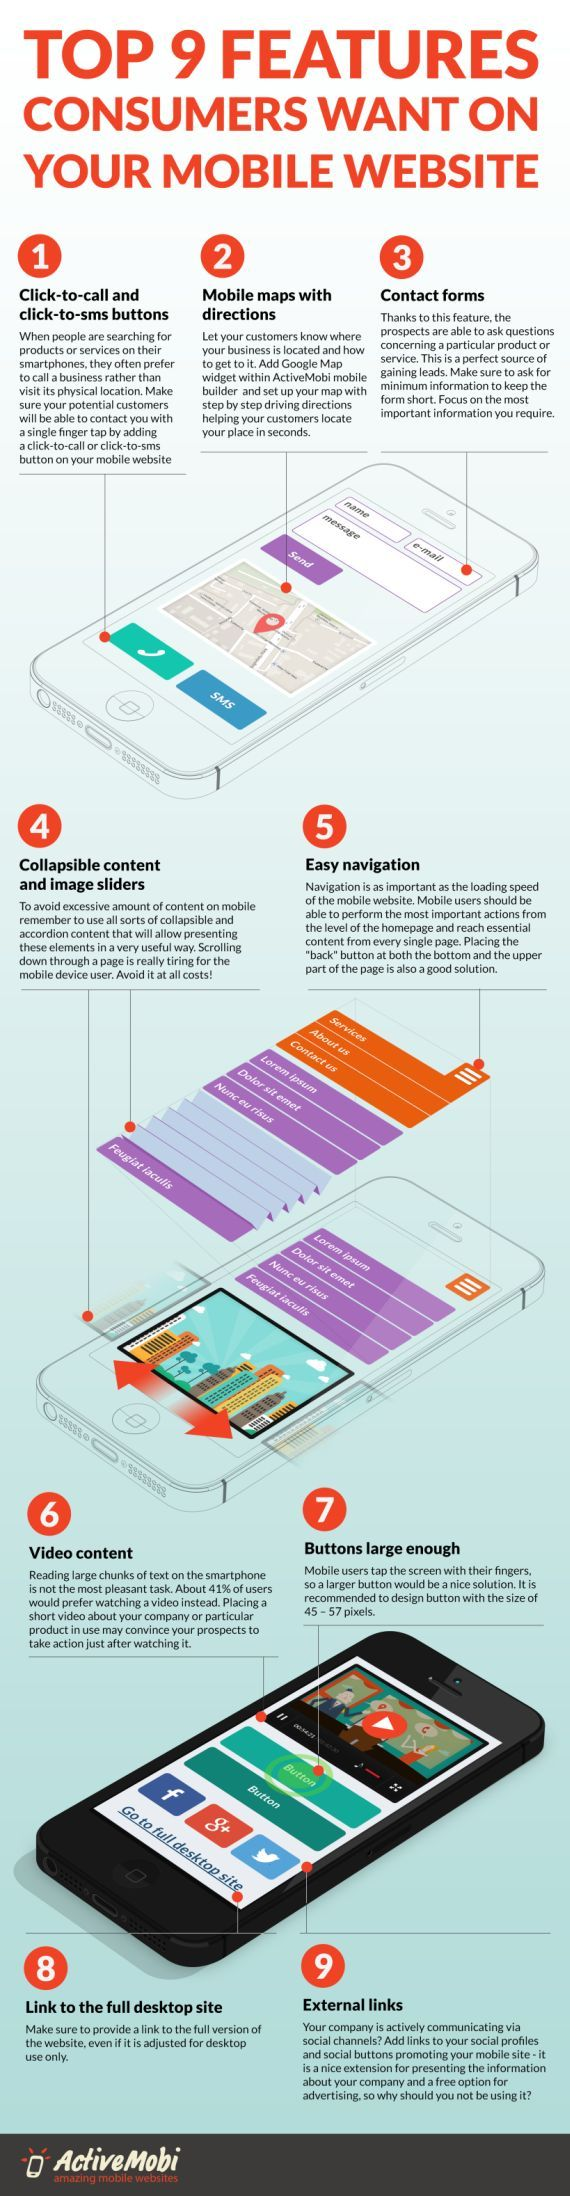 Top 9 Features Mobile Consumers Want On Your Mobile Website (Infographic) image mobile website features infographic2